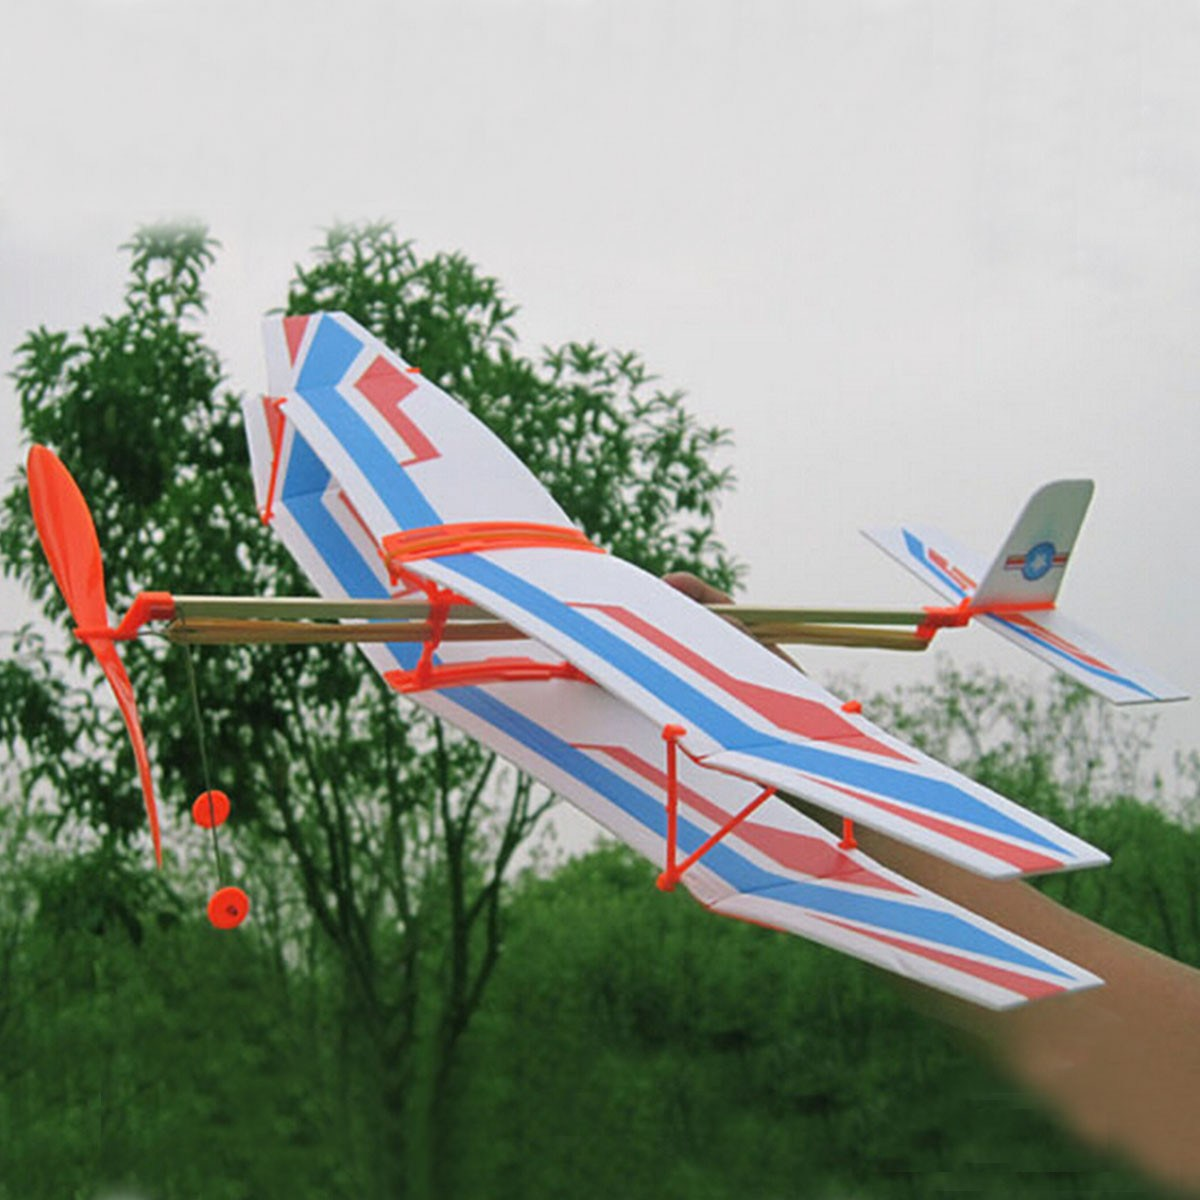 NEW Educational DIY Assembly Airplane Aircraft Launched Powered By Rubber Kids Model Building Kits(China (Mainland))